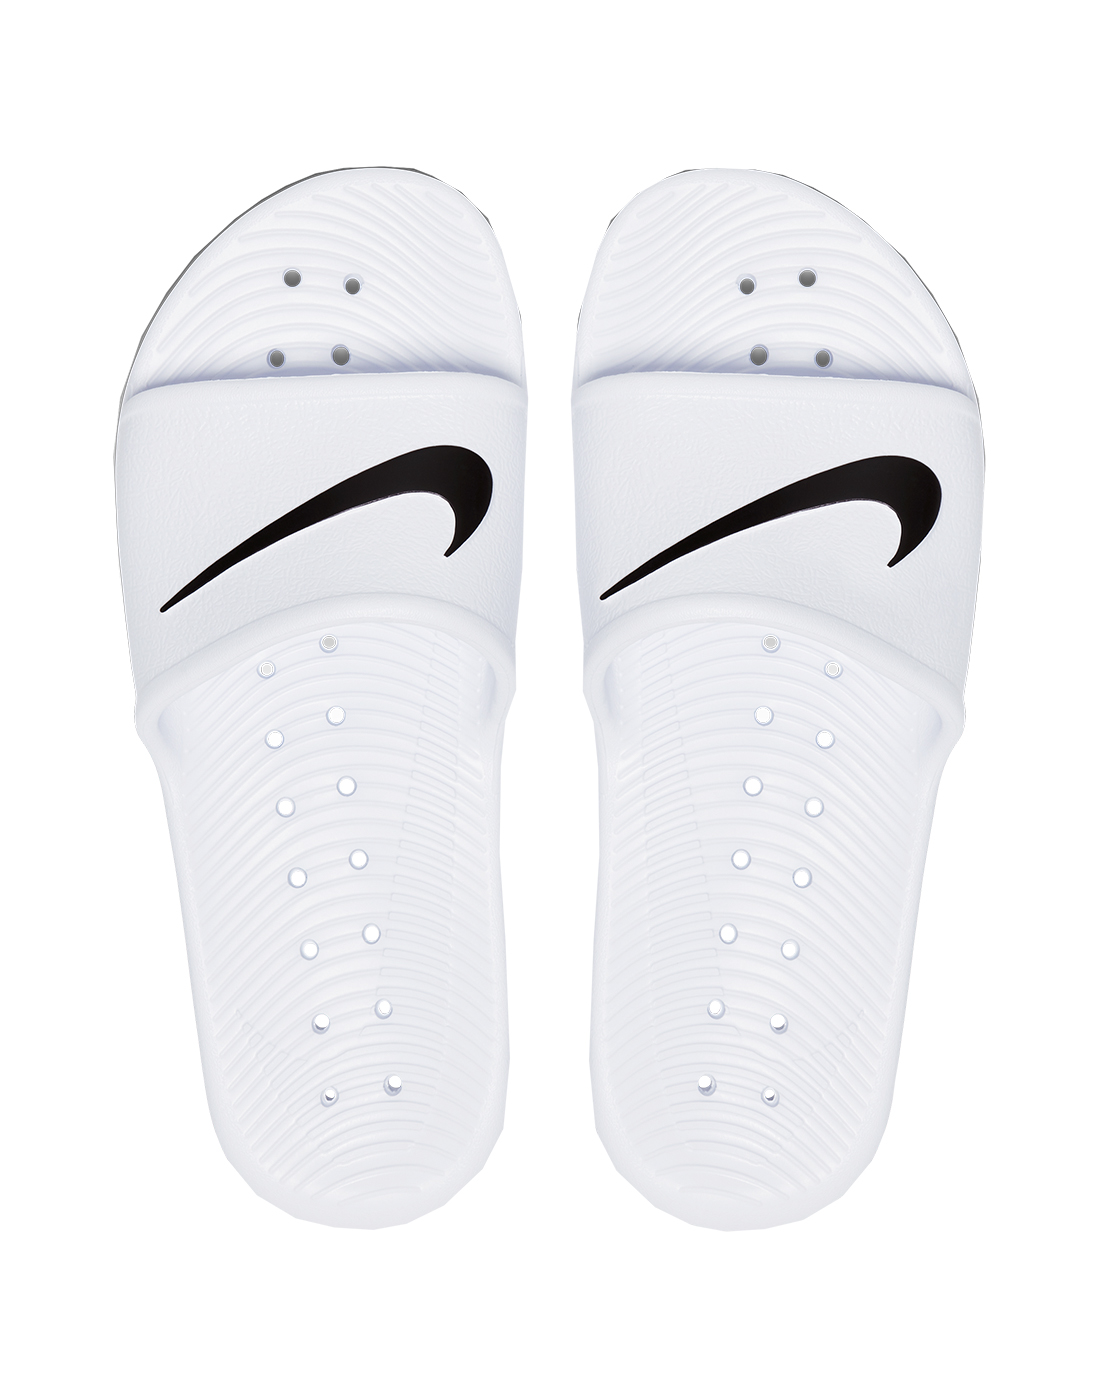 767a9b803521 Women s White   Black Nike Slides